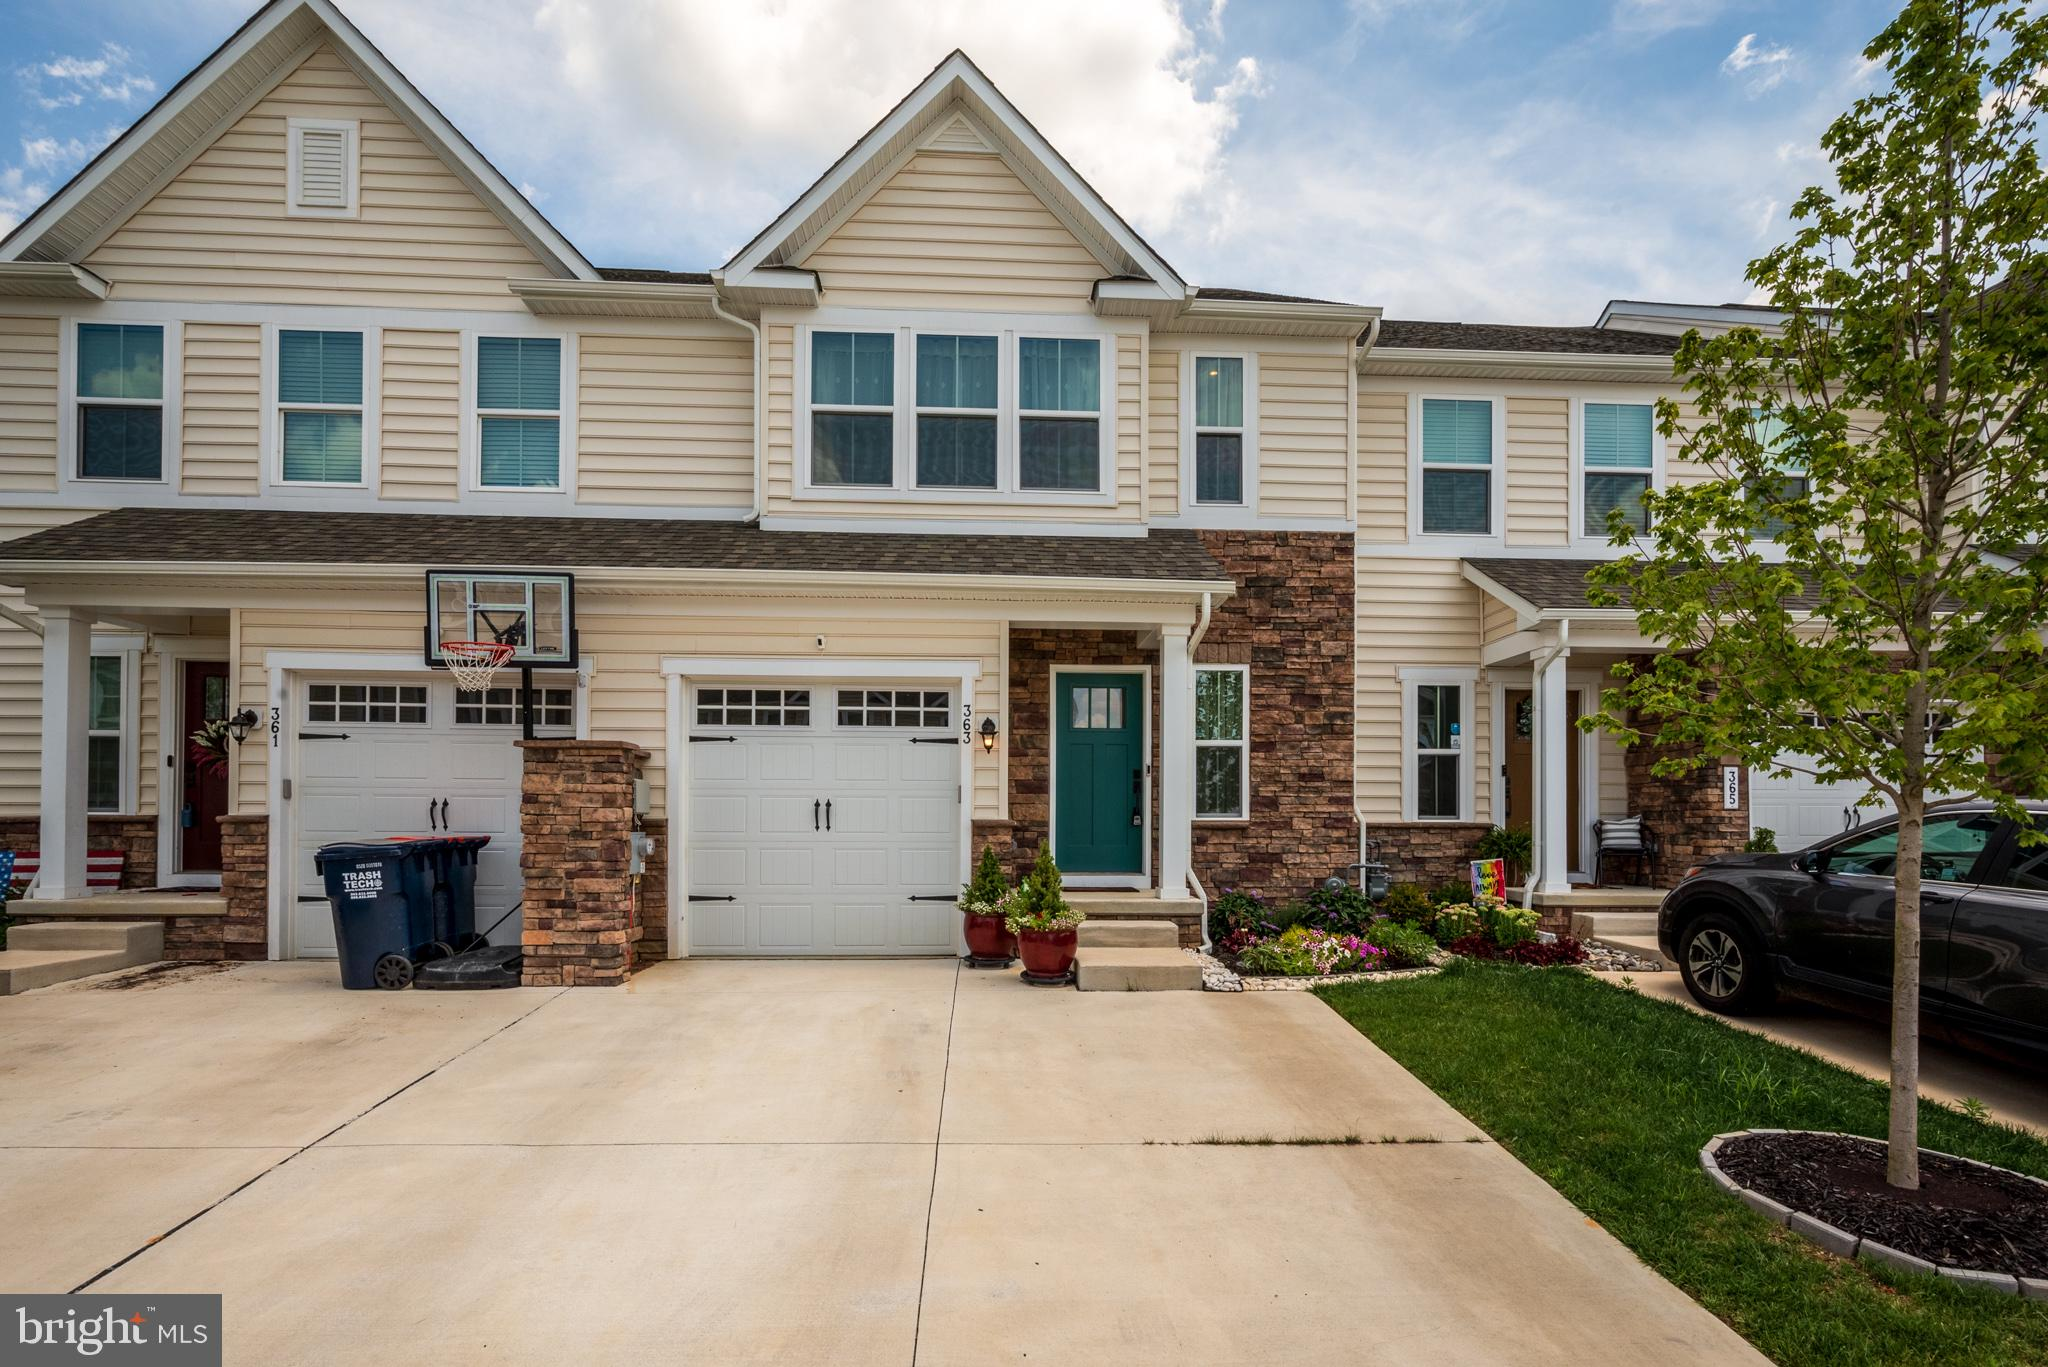 No need to wait until 2022. This LIKE NEW Luxury Roxbury Model in the popular Preserve at Deep Creek, built in 2020 will not last long. Title Policy less than 5yrs may be transferable to buyer and save buyer money. This beautiful townhome has a partial stone front, covered front porch, 3 Bed, 2.5 Bath, with the 6ft Extension, Finished Basement, 1-car Garage, Security System, 30yr Roof Shingle, concrete driveway. Make note this home includes many Premium Features selected at new construction and done post settlement; a benefit of buying a pre-owned home. This community HOA includes Lawn Maintenance!! This grand floor plan offers a lot of natural sunlight. This home is also near multiple communal parking lots, perfect for guests. The MAIN FLOOR, enter the front door into the warm foyer with curved staircase to the right leading to the upper floor, walk forward to the main level and notice the wide-plank LVP flooring throughout the Foyer, Hall, Powder Room, Kitchen, Dinette and Pantry. Beautiful Kitchen with Quartz Countertop and accented tile backsplash. Large Island with Double Sink, Barstool Seating, Recessed Lighting, and a Pantry. The main level has an Open Floor plan between Kitchen, Dining Rm, and Family Rm. The Family Room has a sliding door to the backyard and a Composite Deck  (approx. 12x11) and steps to the yard. Completing the main floor includes the Powder Room and door to the Finished Basement. The UPPER FLOOR has an Elegant Owner'sSuite with Tray Ceiling, Two large closets (one is a walk-in with a front window), Luxury Owner's  Bath with a tiled shower and and bench, glass door, dual shower heads, dual sink vanity with marble countertop, separate toilet room, and a linen closet. Two additional bedrooms and a full bath with tiled shower with tub, single vanity with marble counter. The Laundry Room has Shelving and a Laundry Sink, and a Linen Closet, complete the upper level. The FINISHED BASEMENT adds great value and interior square footage and hosts a w